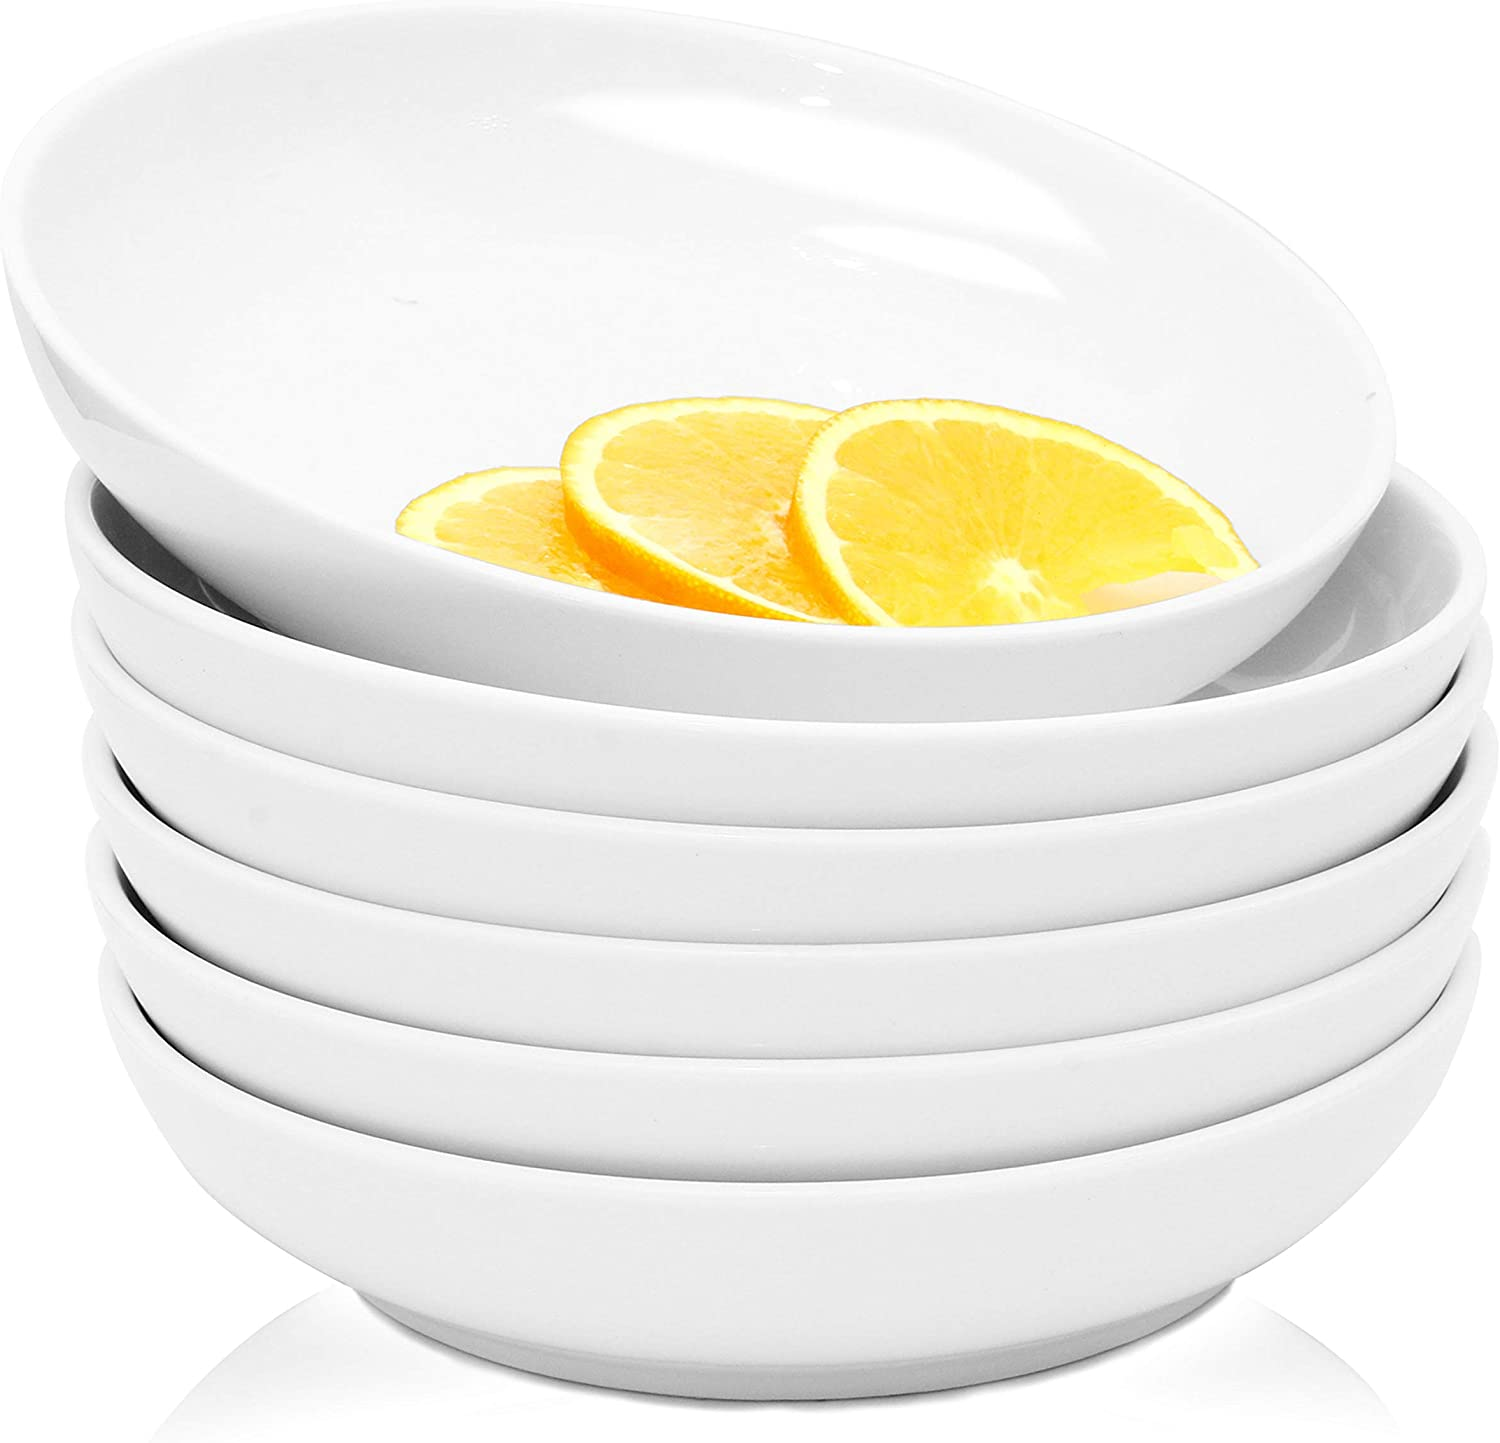 Youngever 22 Ounce Porcelain Salad Pasta Bowls, Set of 6, White Porcelain Deep Plates, Entree Bowls, Ceramic Plates, Microwave Safe, Dishwasher Safe